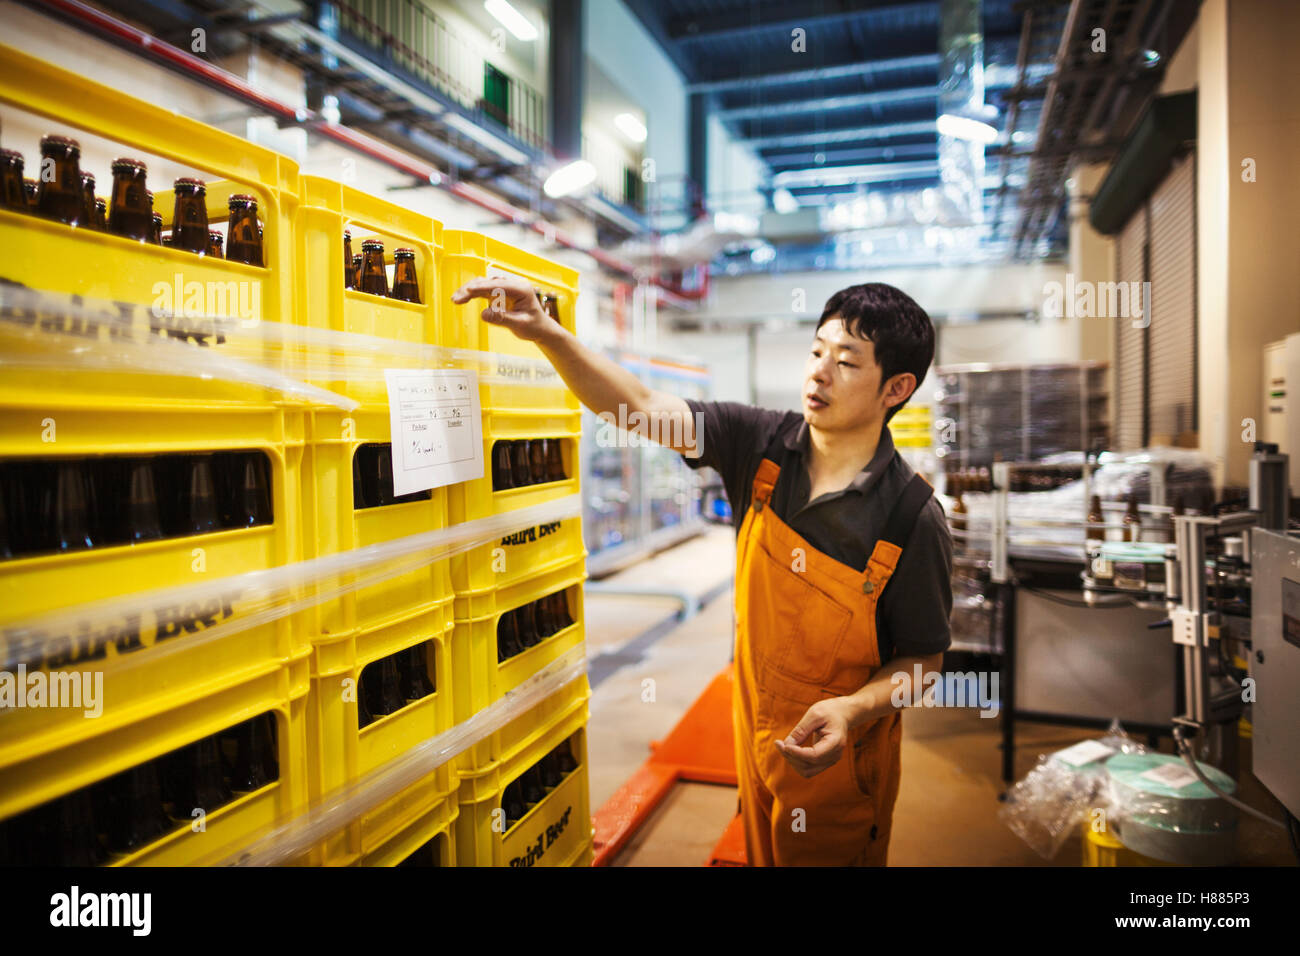 Worker labelling yellow plastic crates with beer bottles in a brewery. - Stock Image